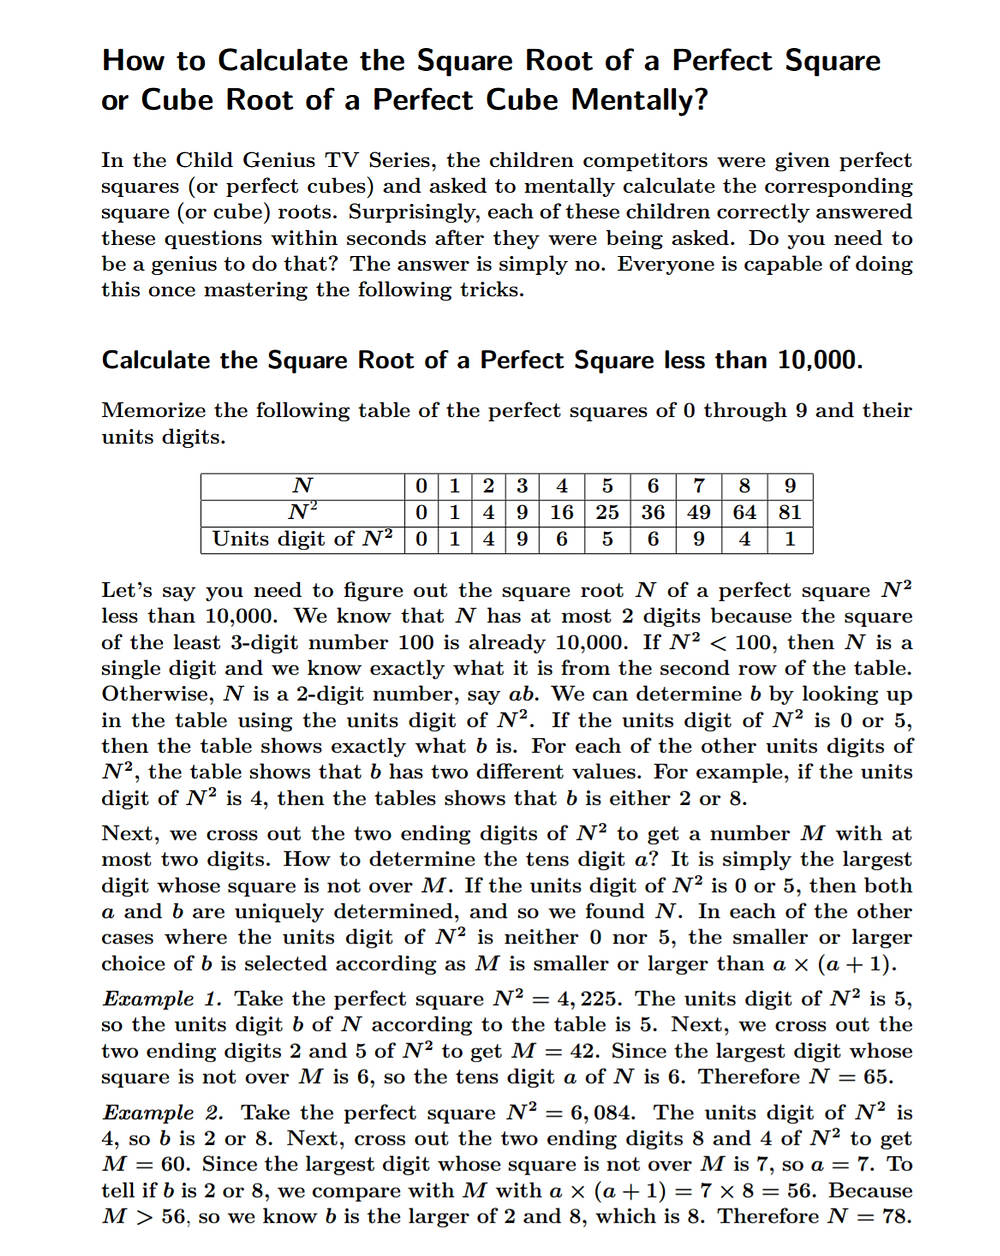 How to Calculate the Square Root of a Perfect Square or Cube Root of a Perfect Cube Mentally?